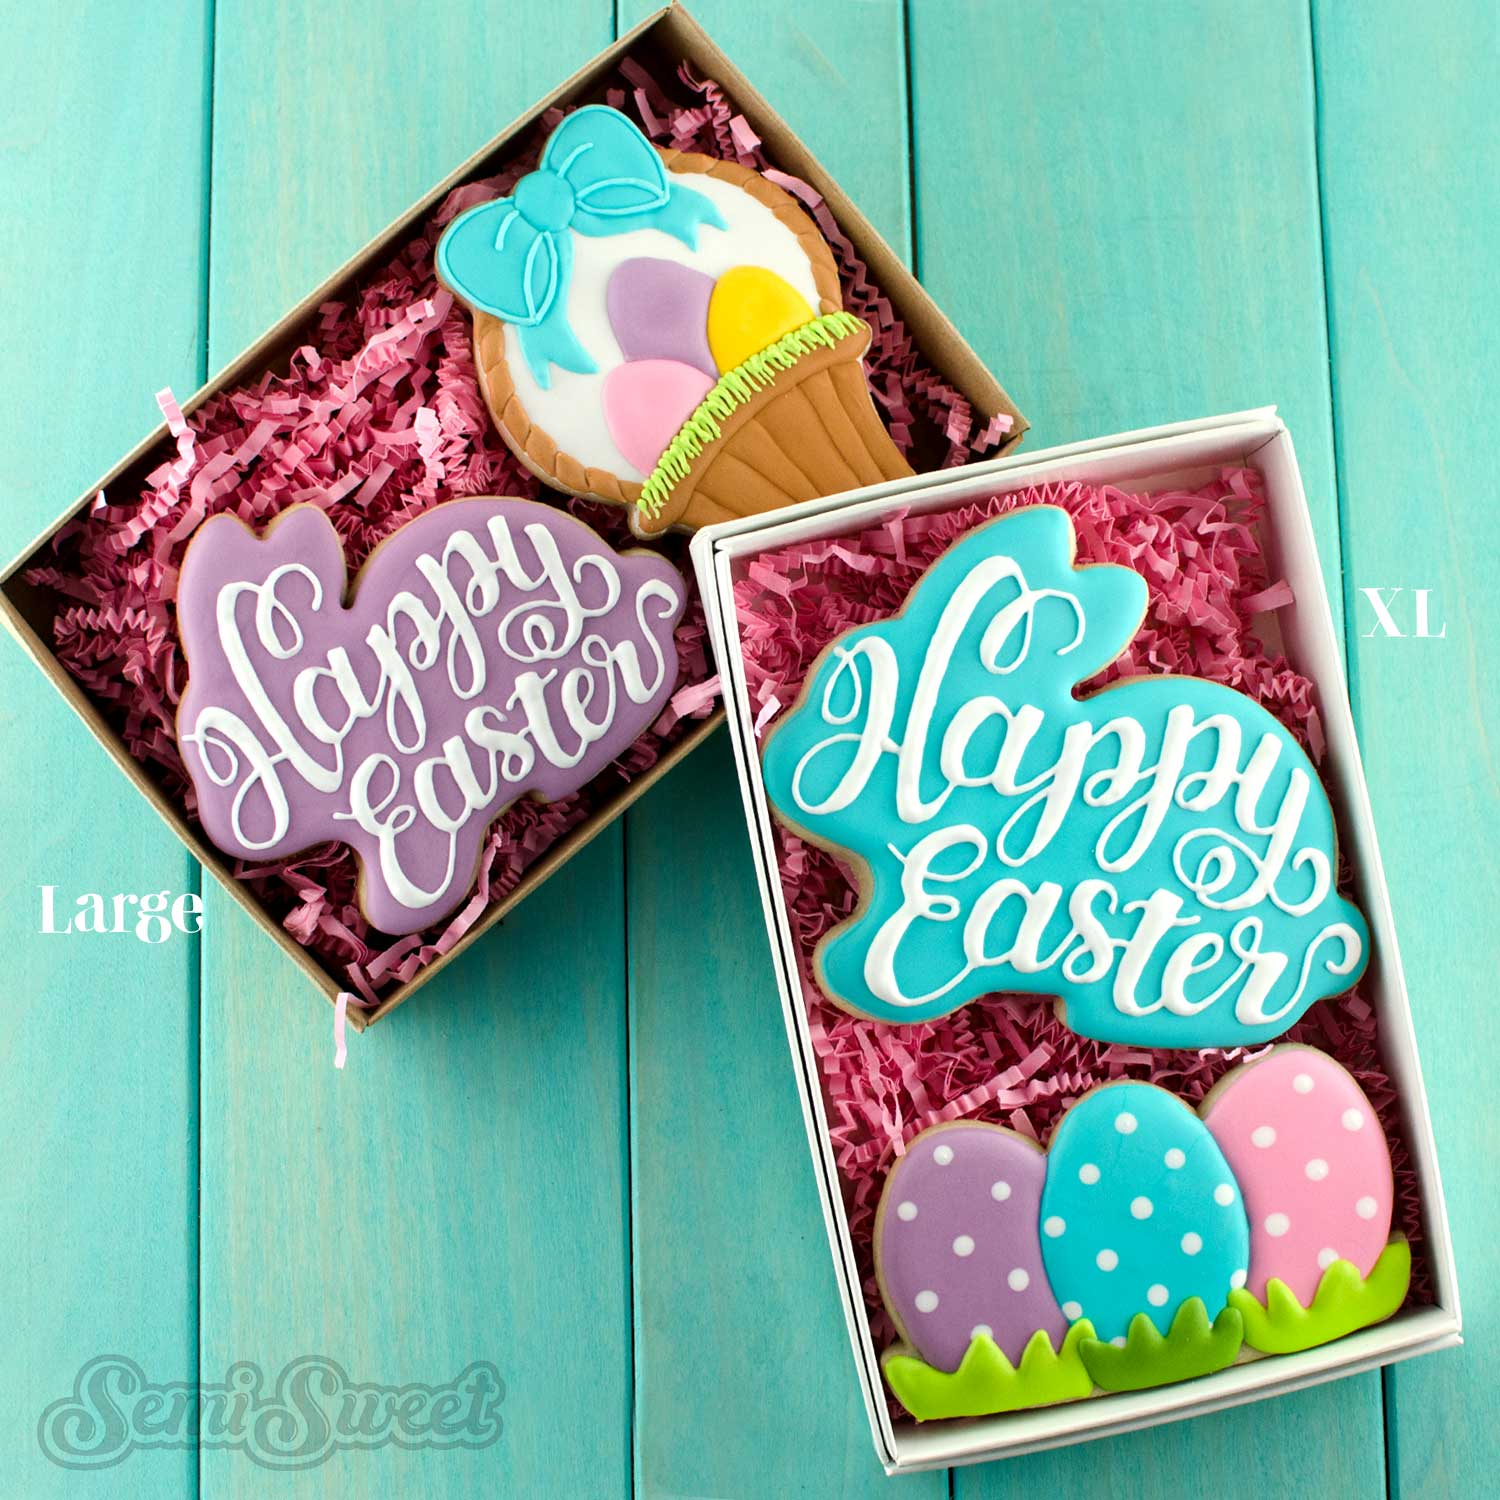 Happy Easter Bunny Cookies by Semi Sweet Designs